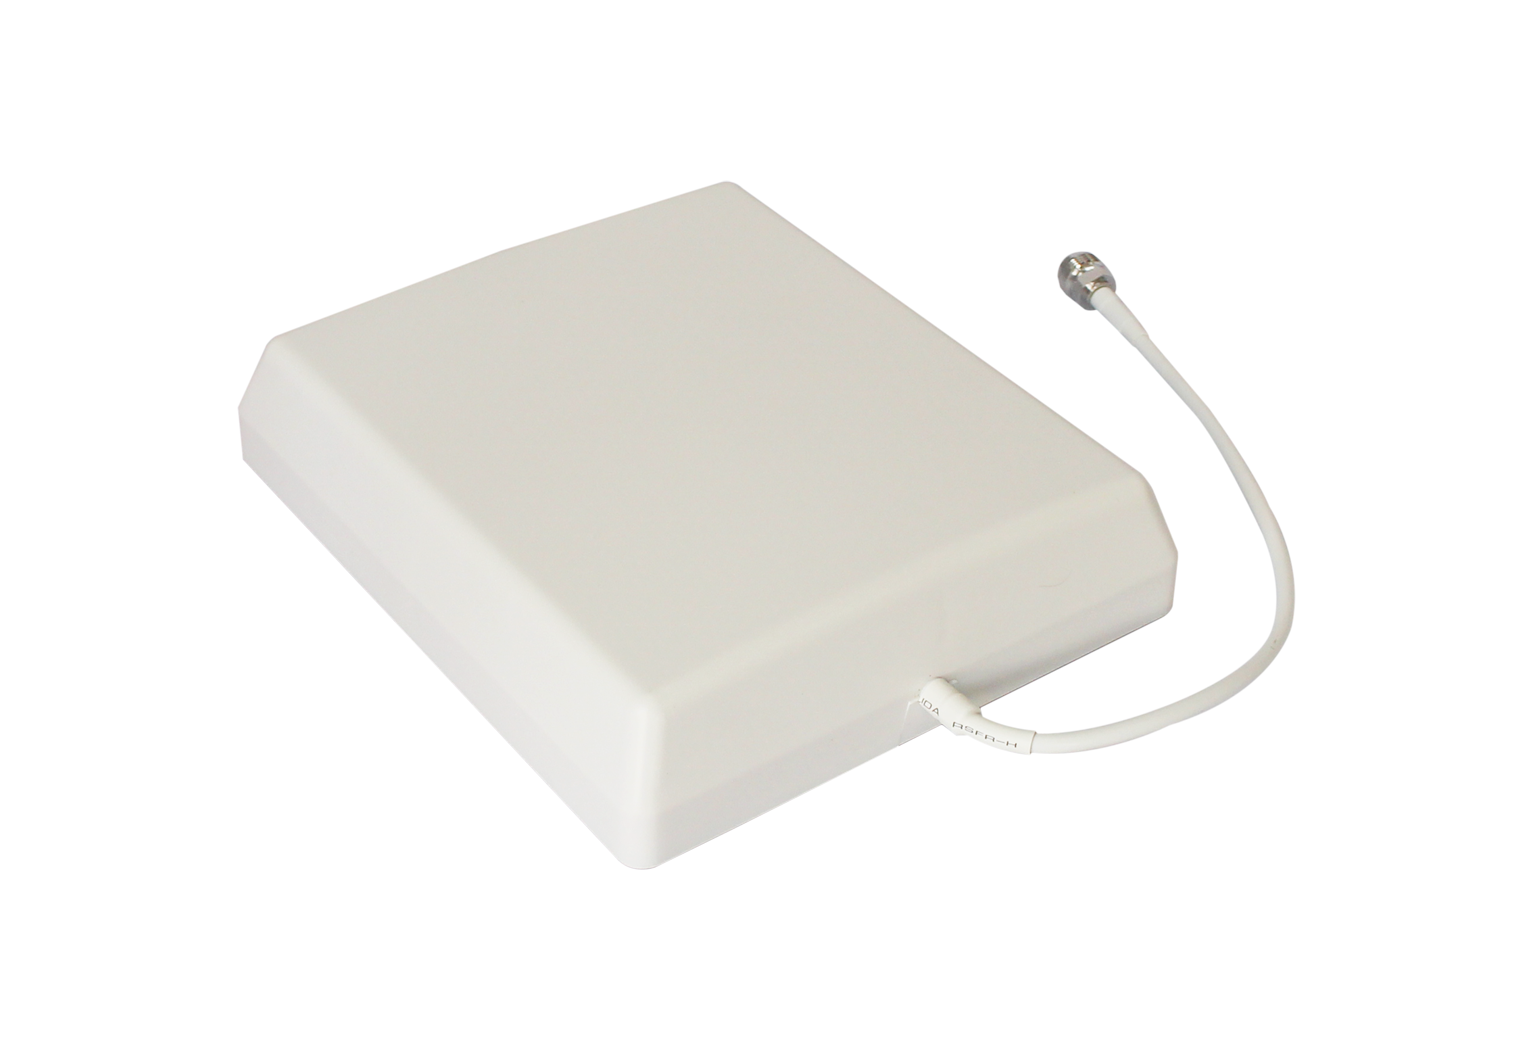 Outdoor Panel Antenna - Mobile Network Booster Antenna